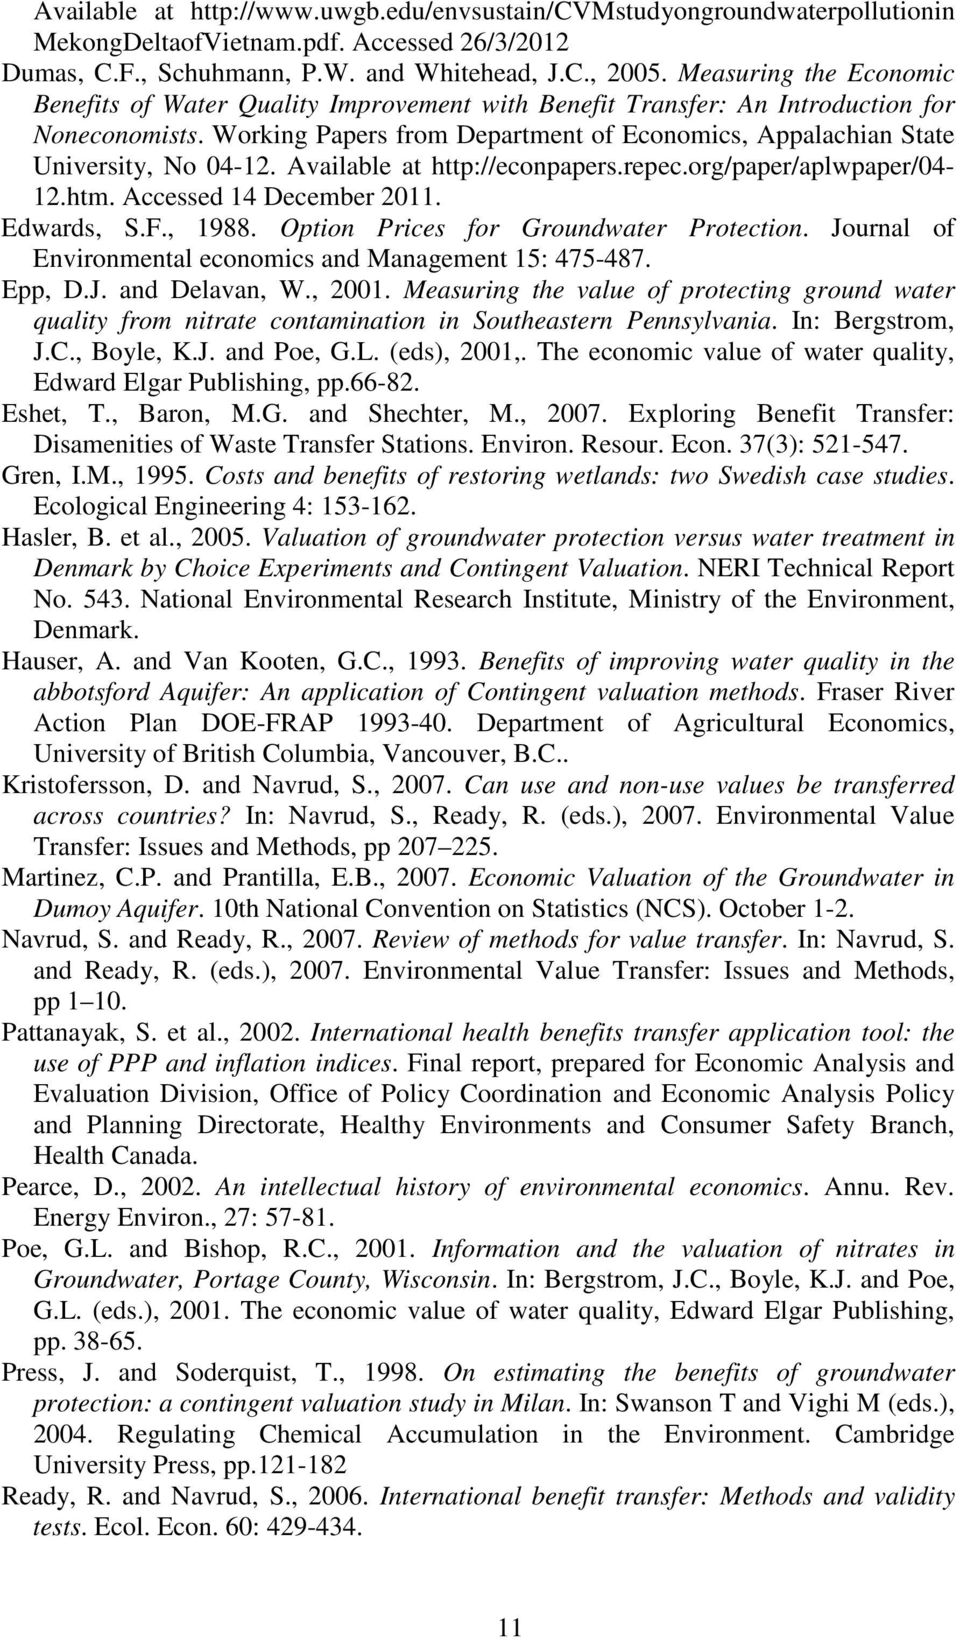 Working Papers from Department of Economics, Appalachian State University, No 04-12. Available at http://econpapers.repec.org/paper/aplwpaper/04-12.htm. Accessed 14 December 2011. Edwards, S.F., 1988.